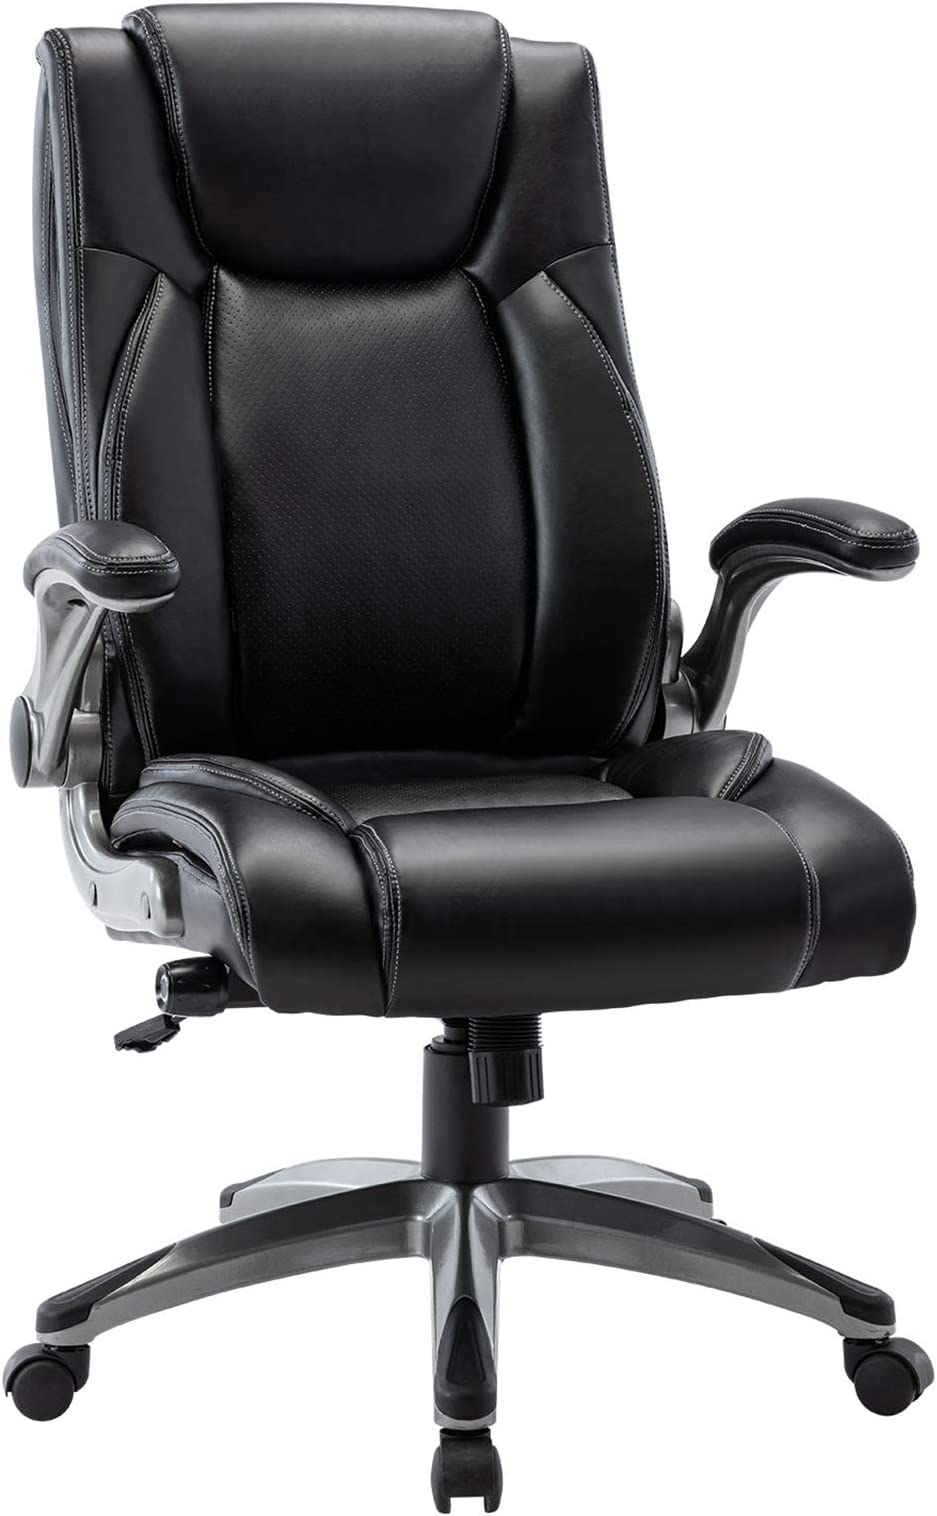 Desk chair with movable arms vs